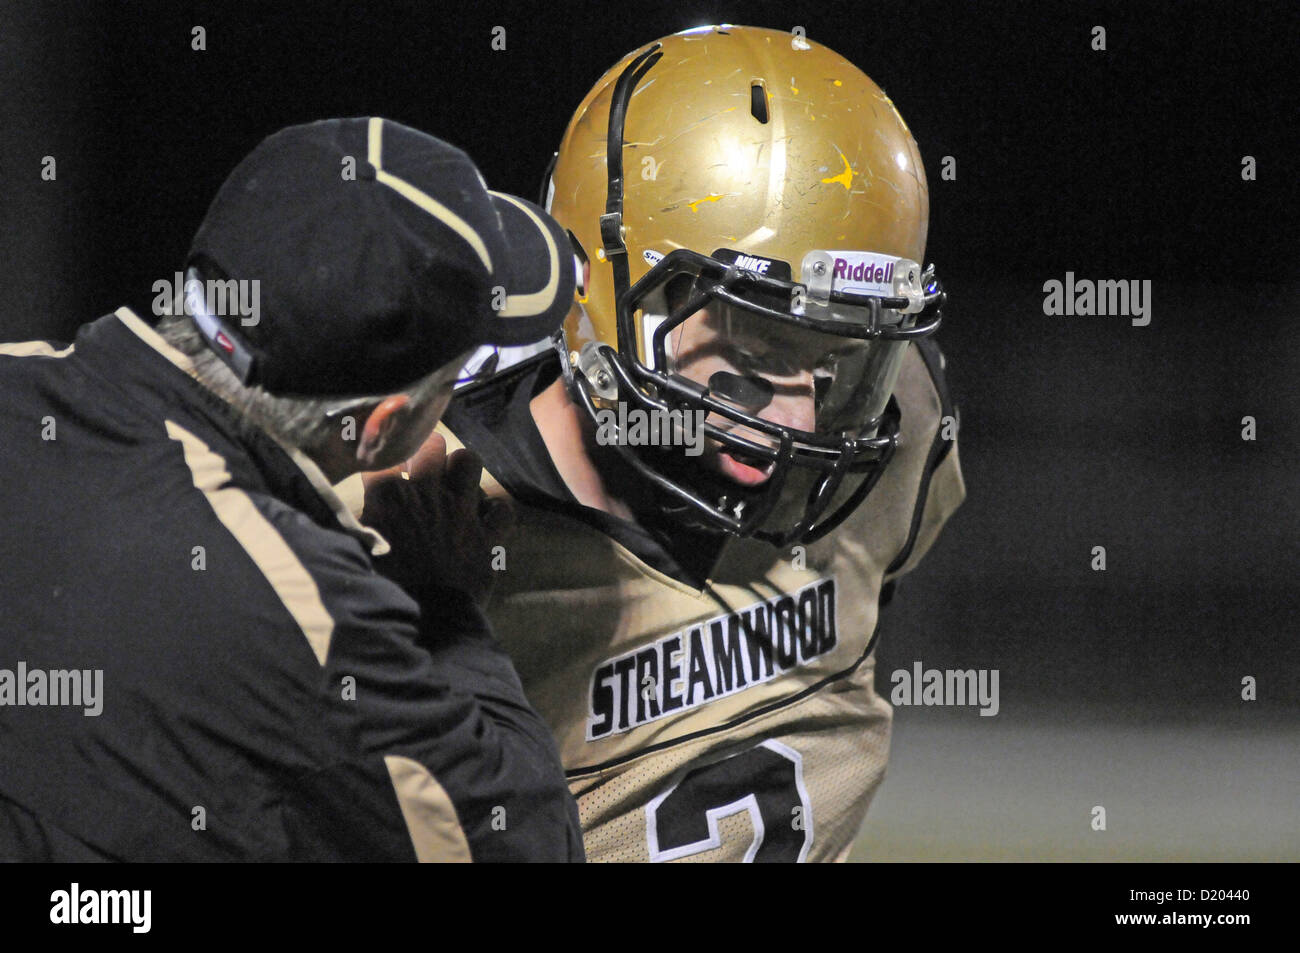 Football coach provides play instructions to his quarterback prior to a play. USA. - Stock Image